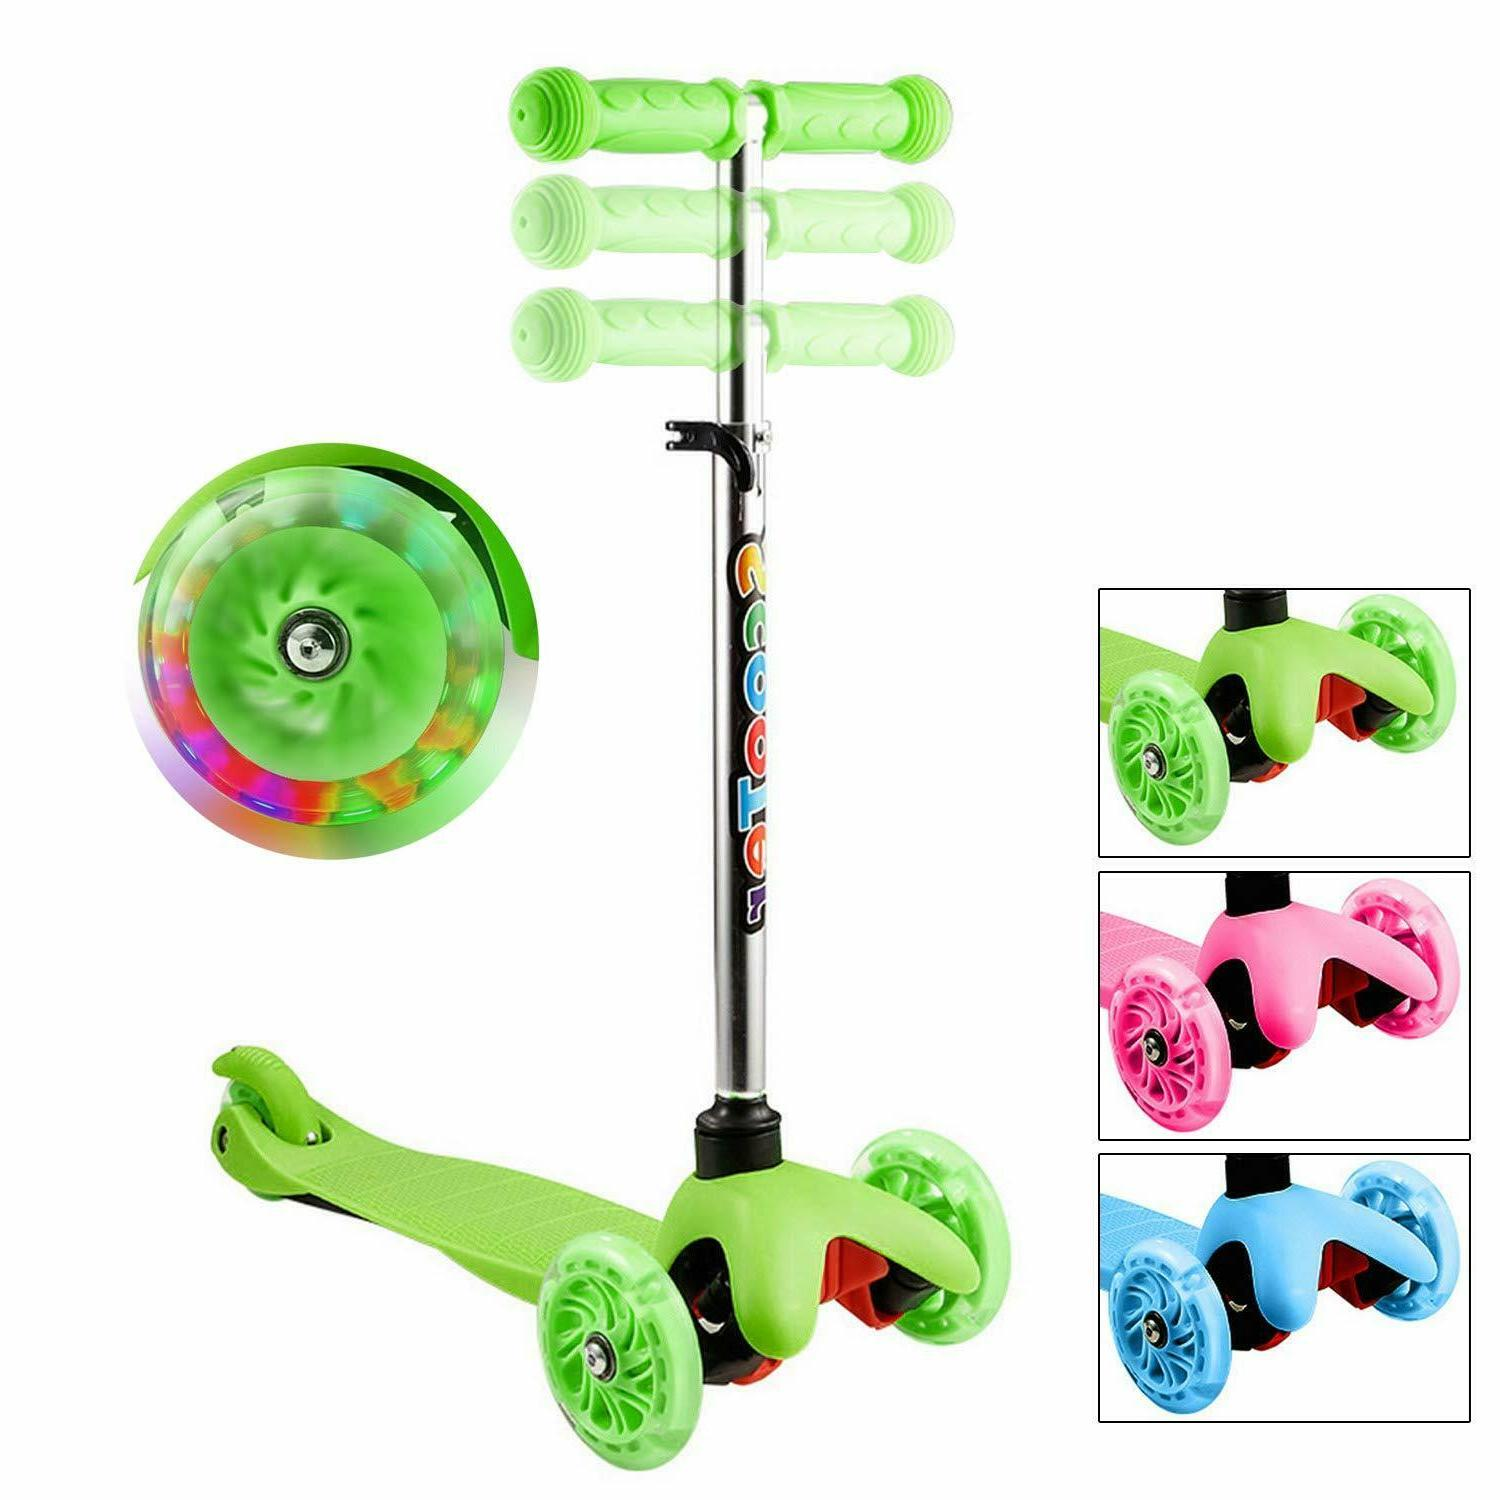 Scooters for Kids & Toddlers 3 Wheel Scooter Great for Girls